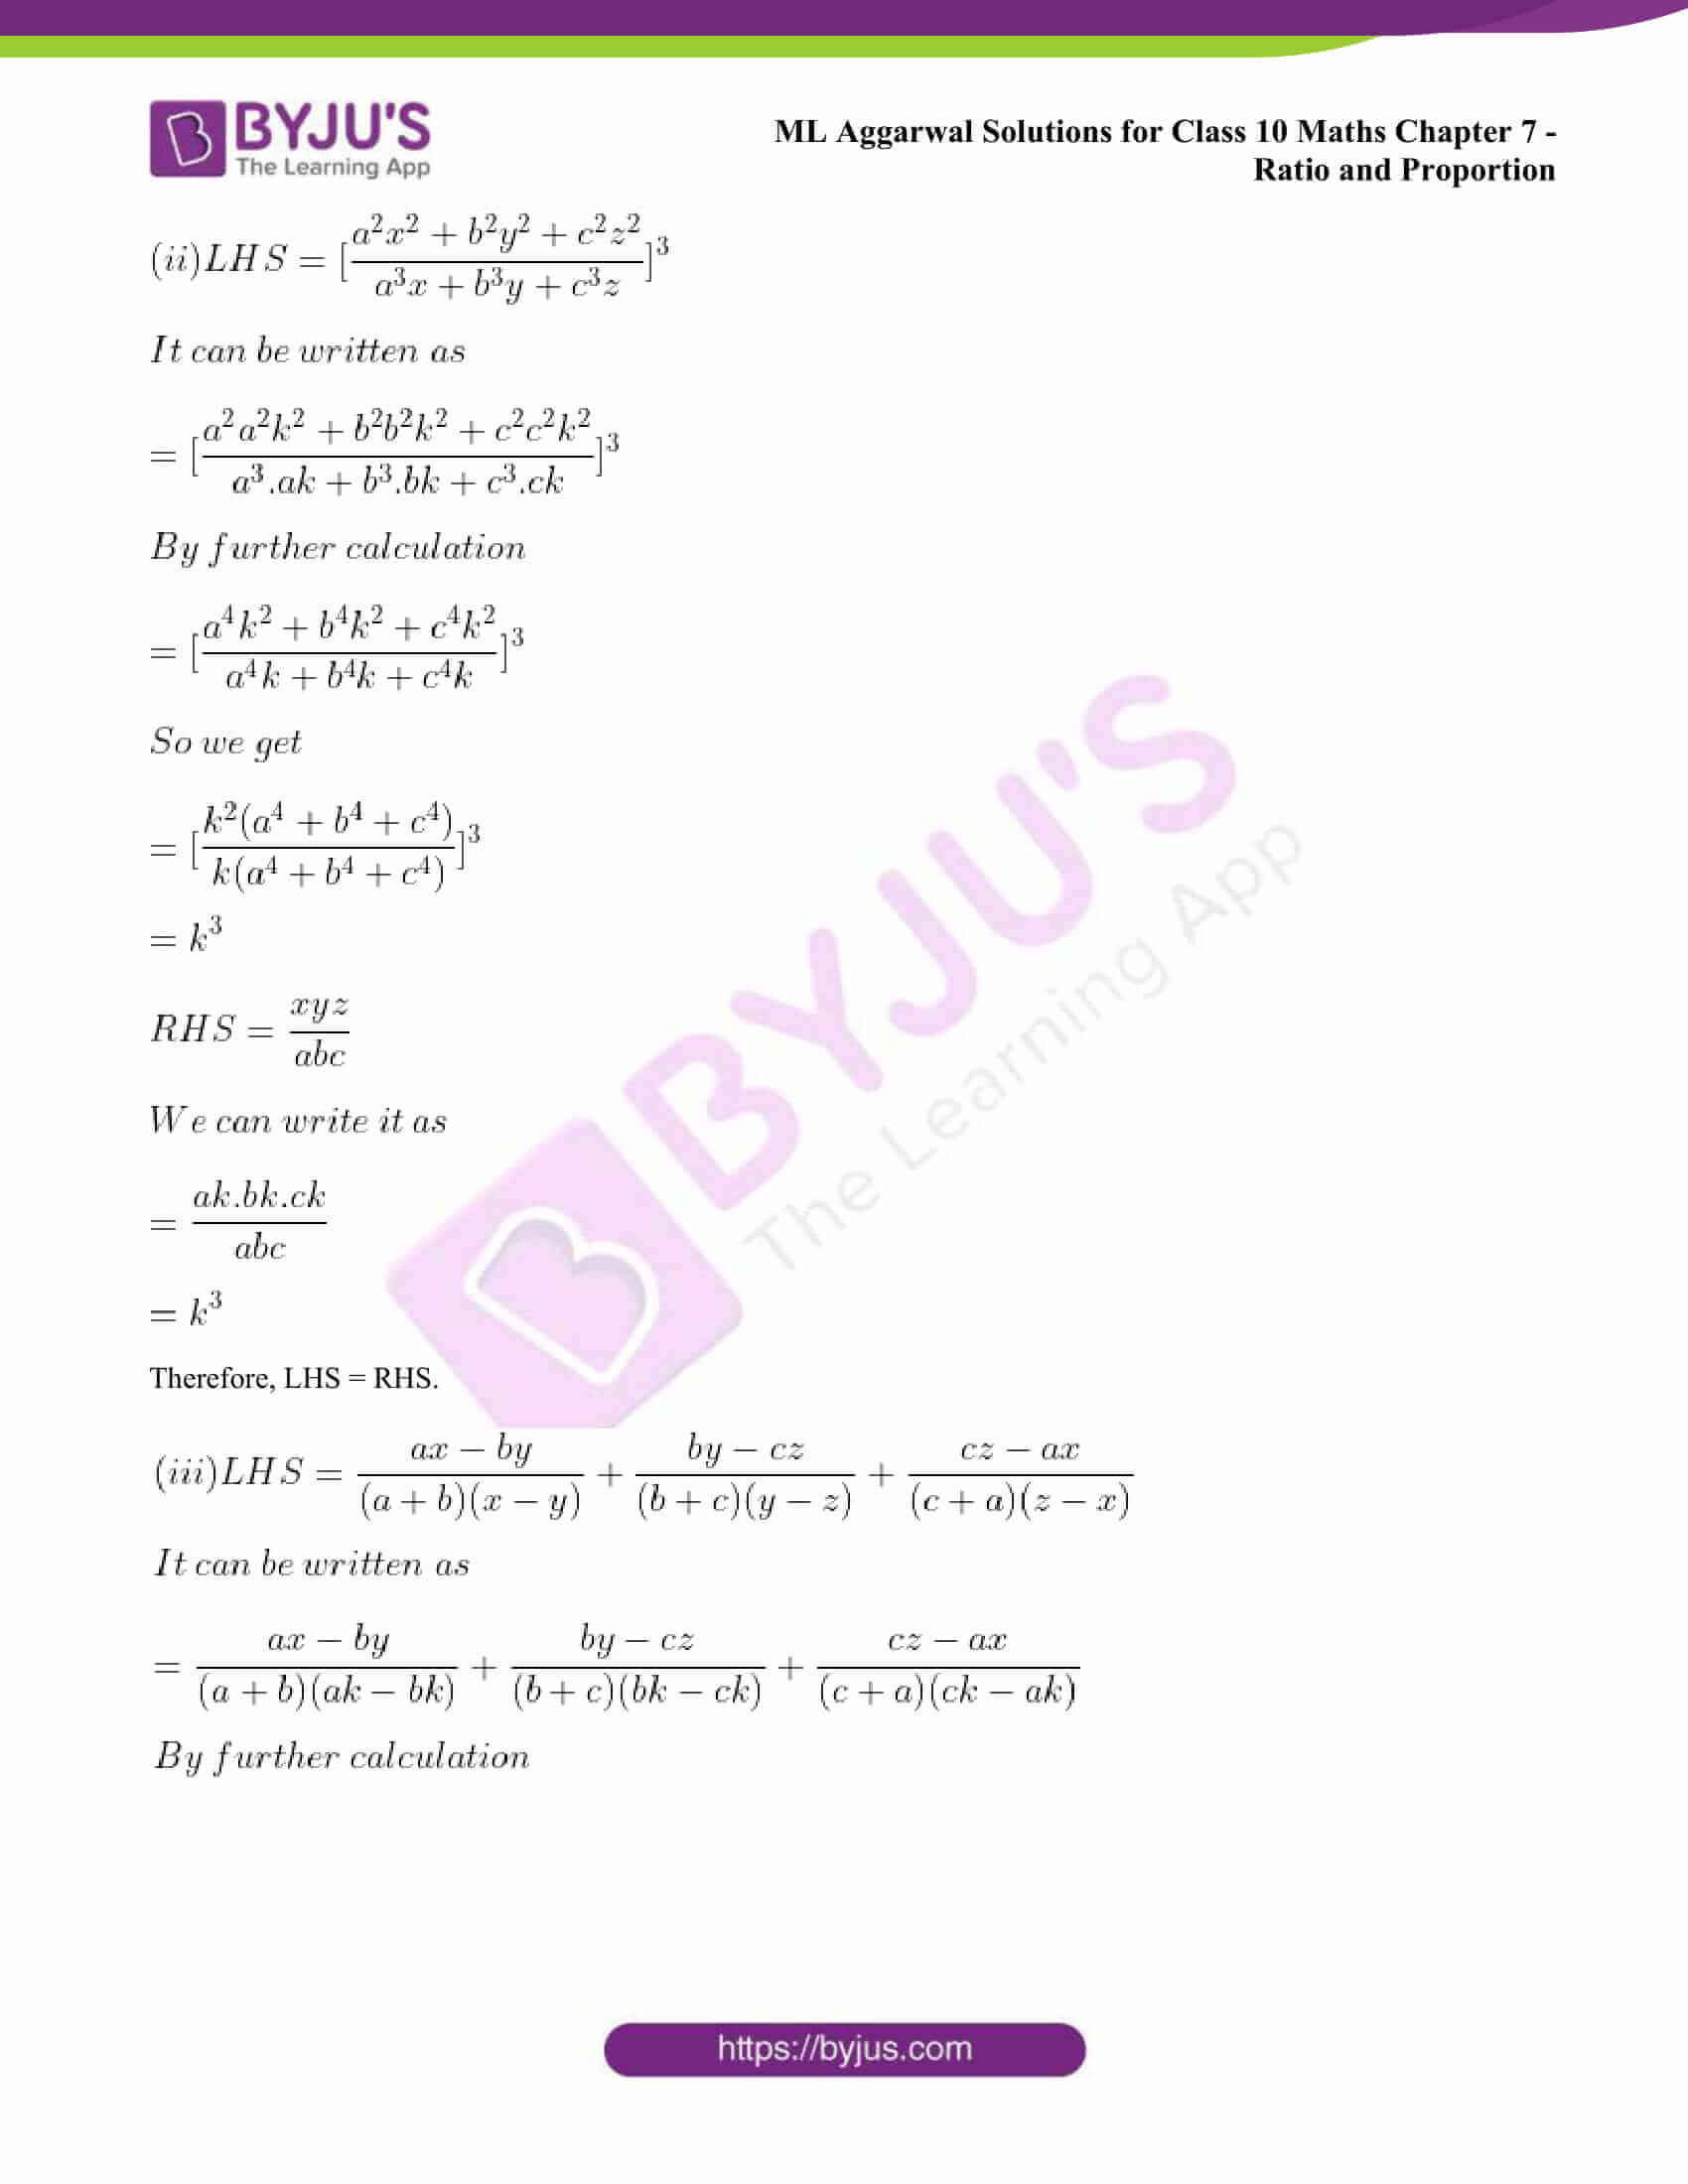 ml aggarwal solutions class 10 maths chapter 7 25